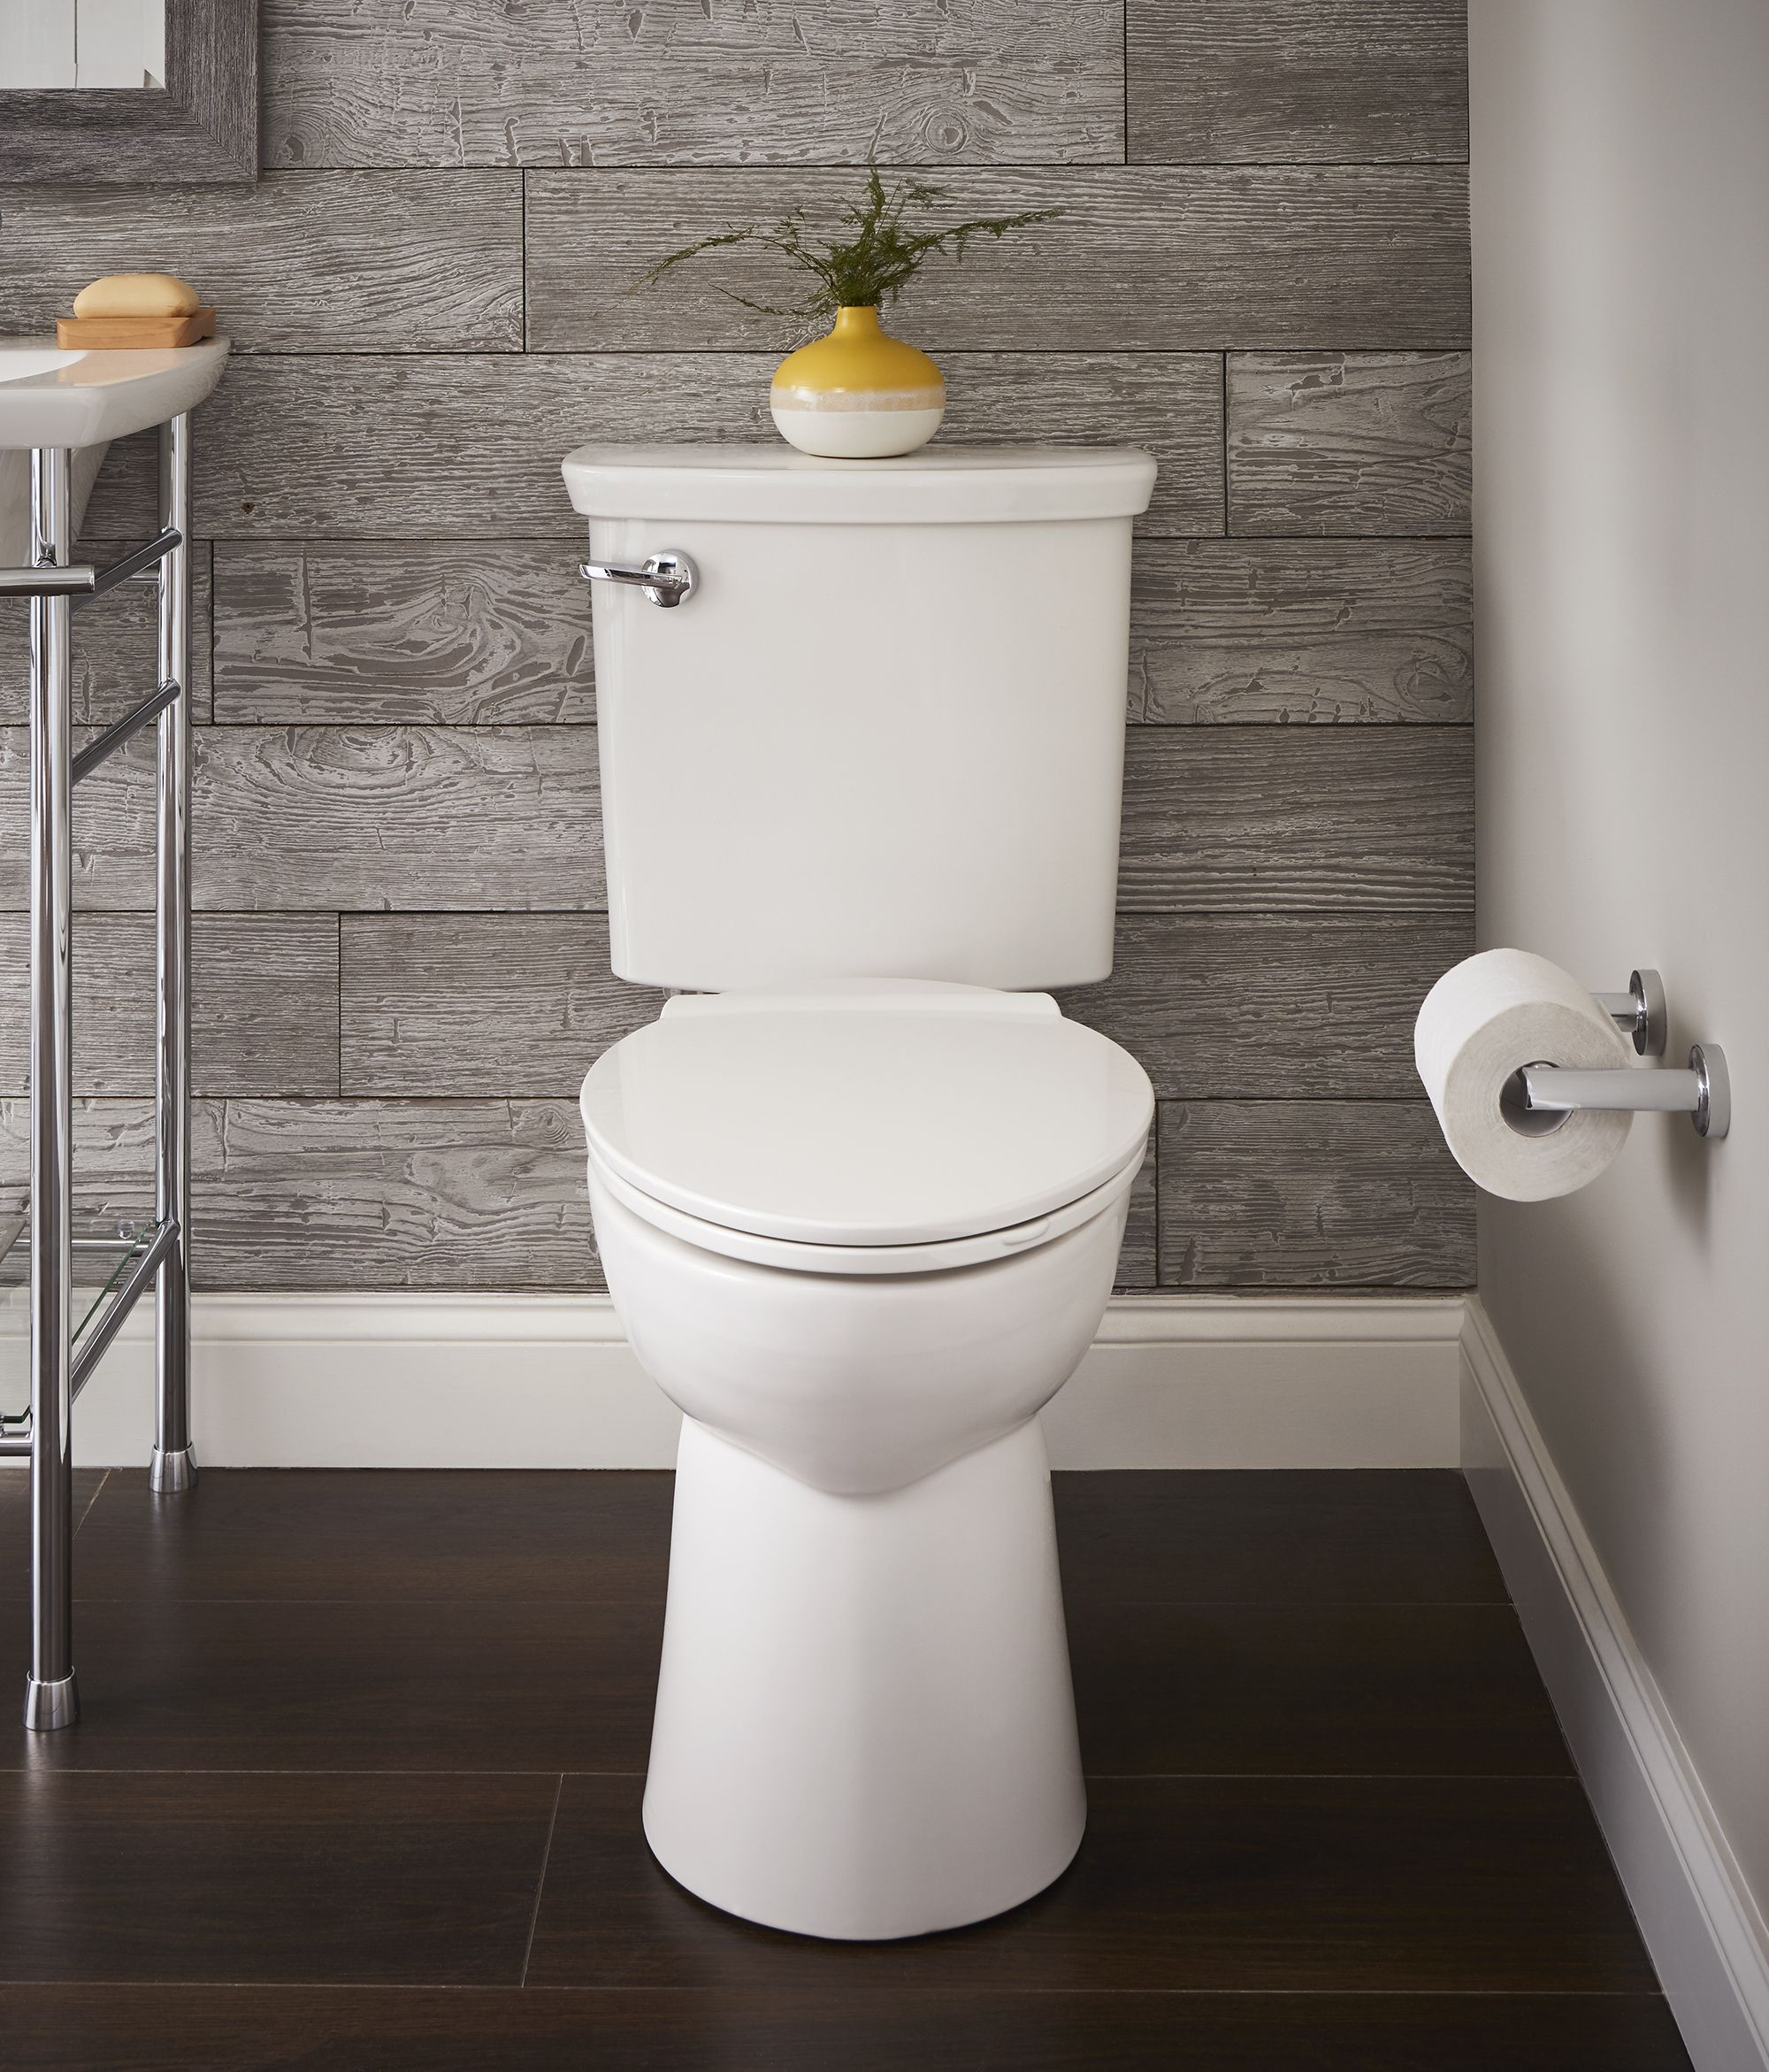 Our Vormax Plus Is Watersense Certified Using Just 1 28 Gallons Per Flush While Still Cleaning Two Times Better Than The Average In 2020 Self Cleaning Toilet Toilet Toilet Installation